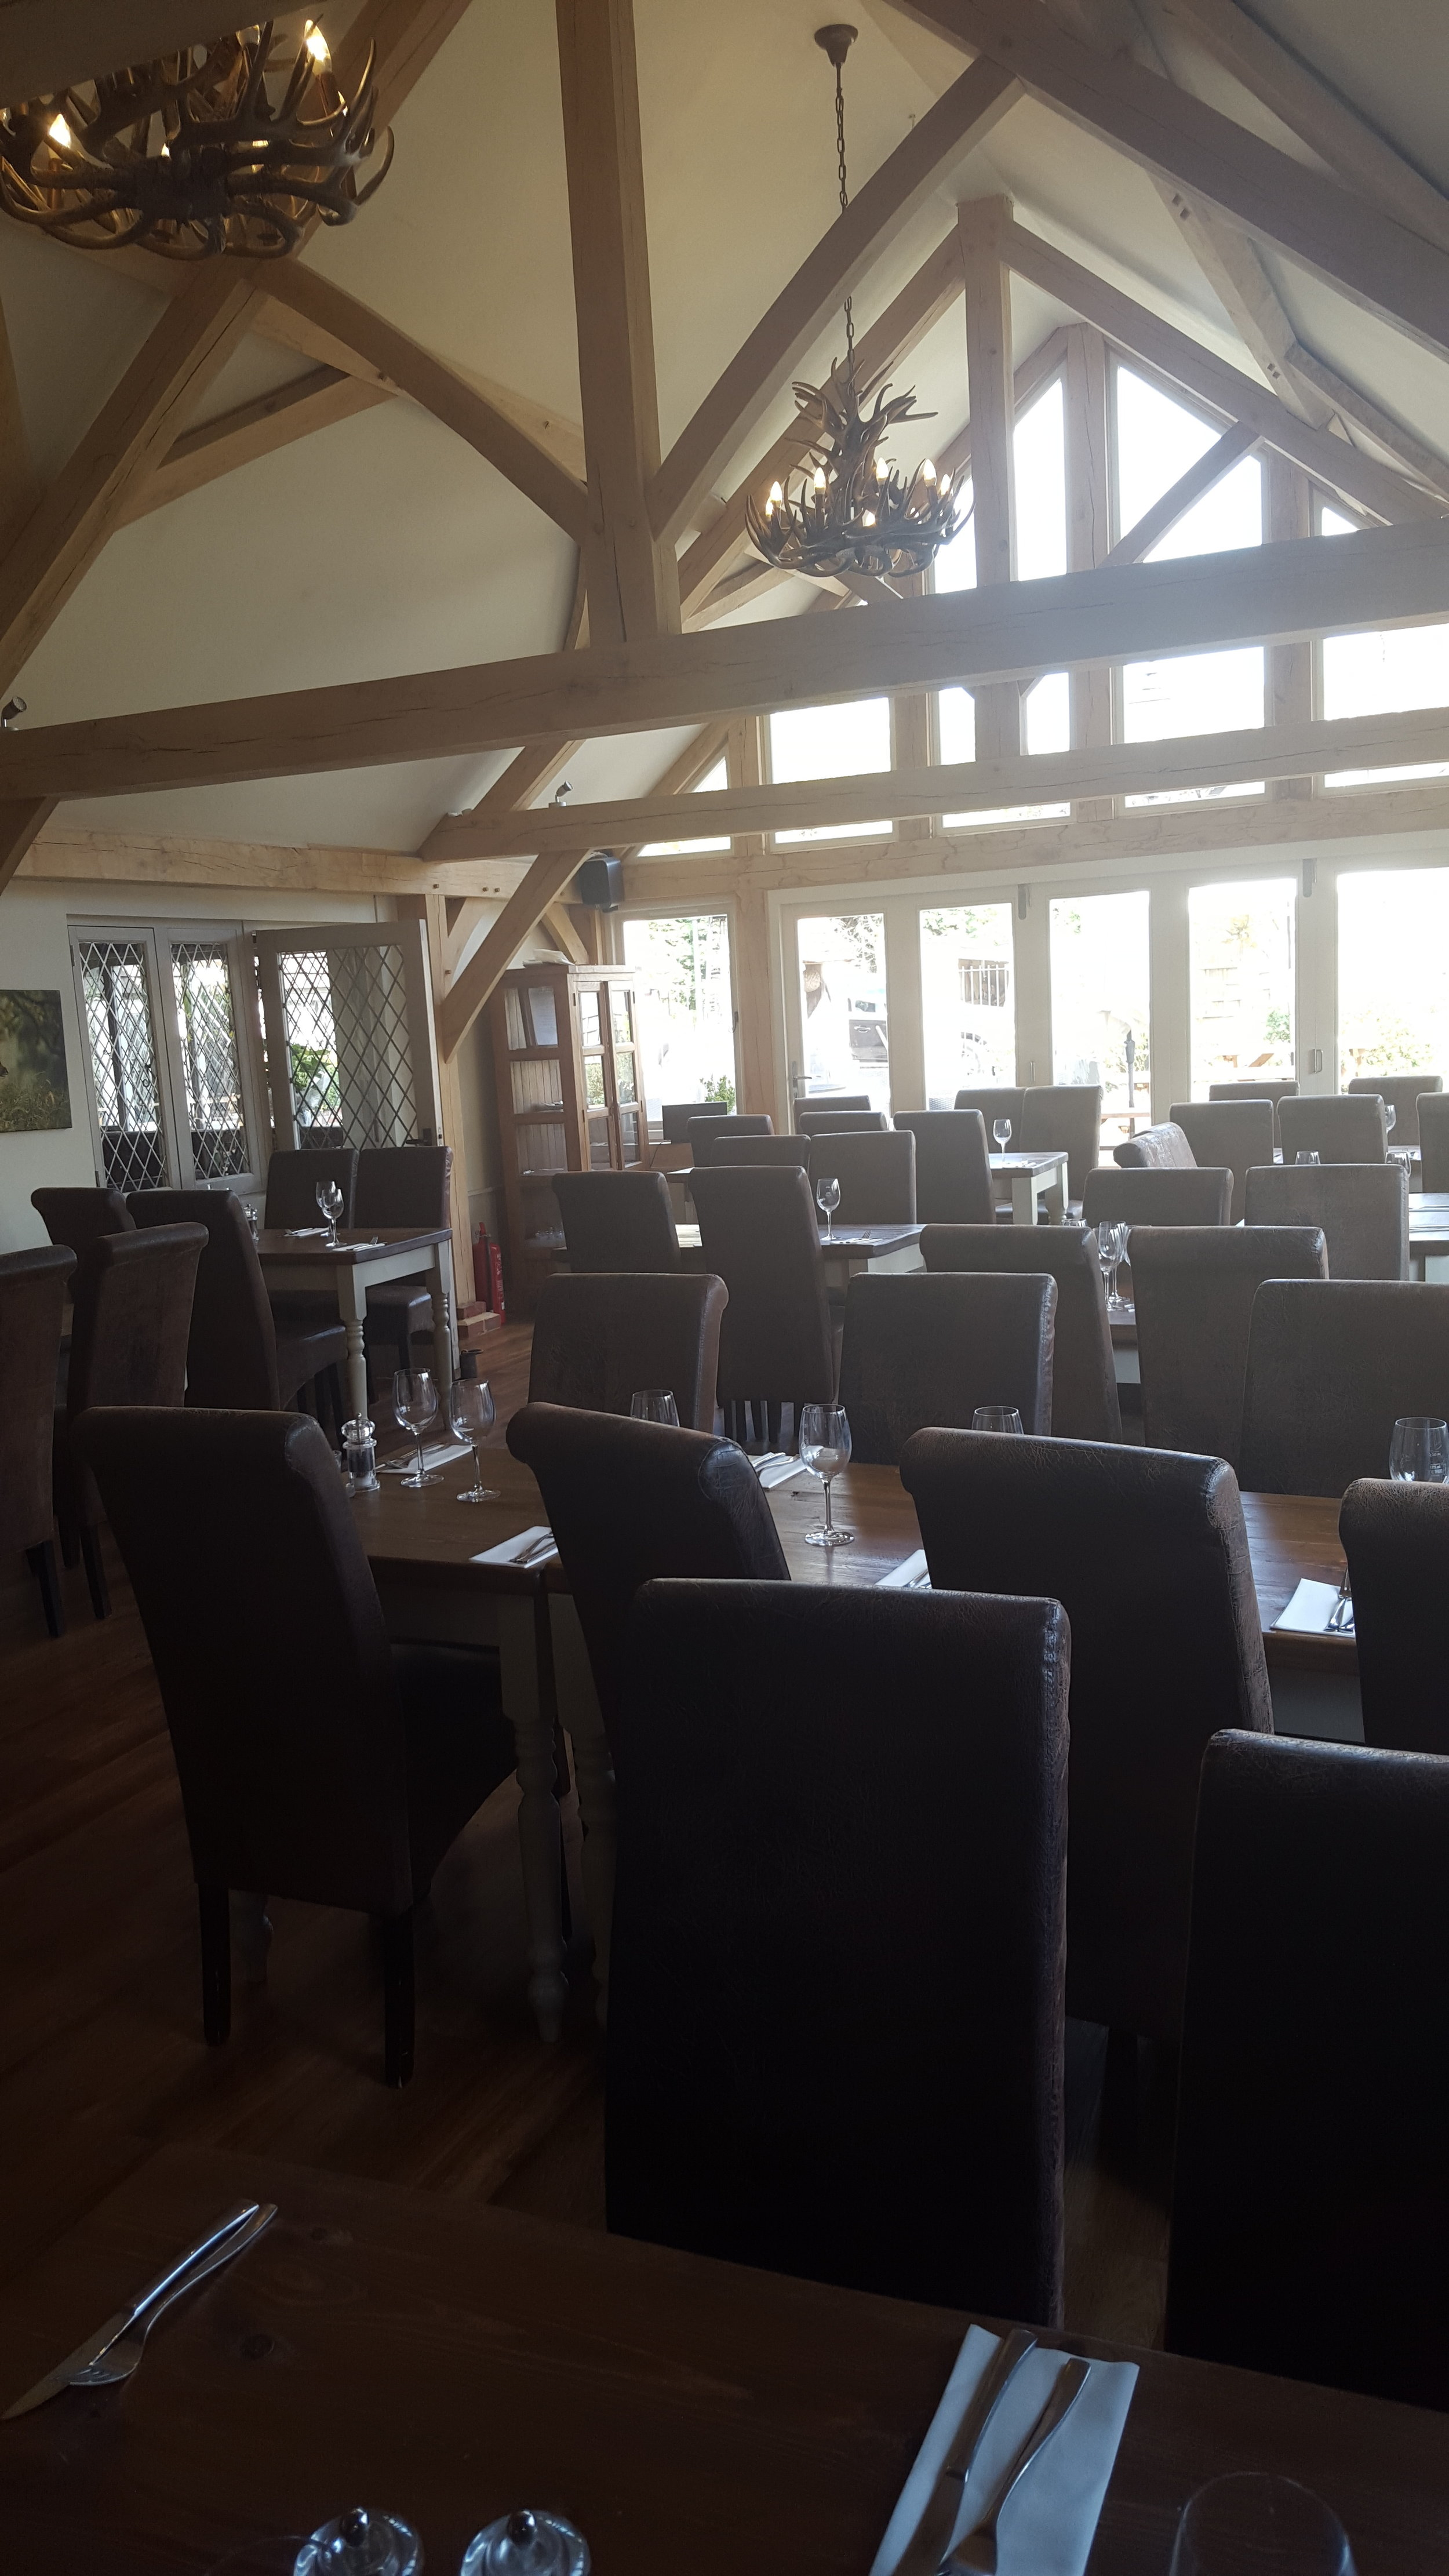 Our new extension perfect for private functions and parties